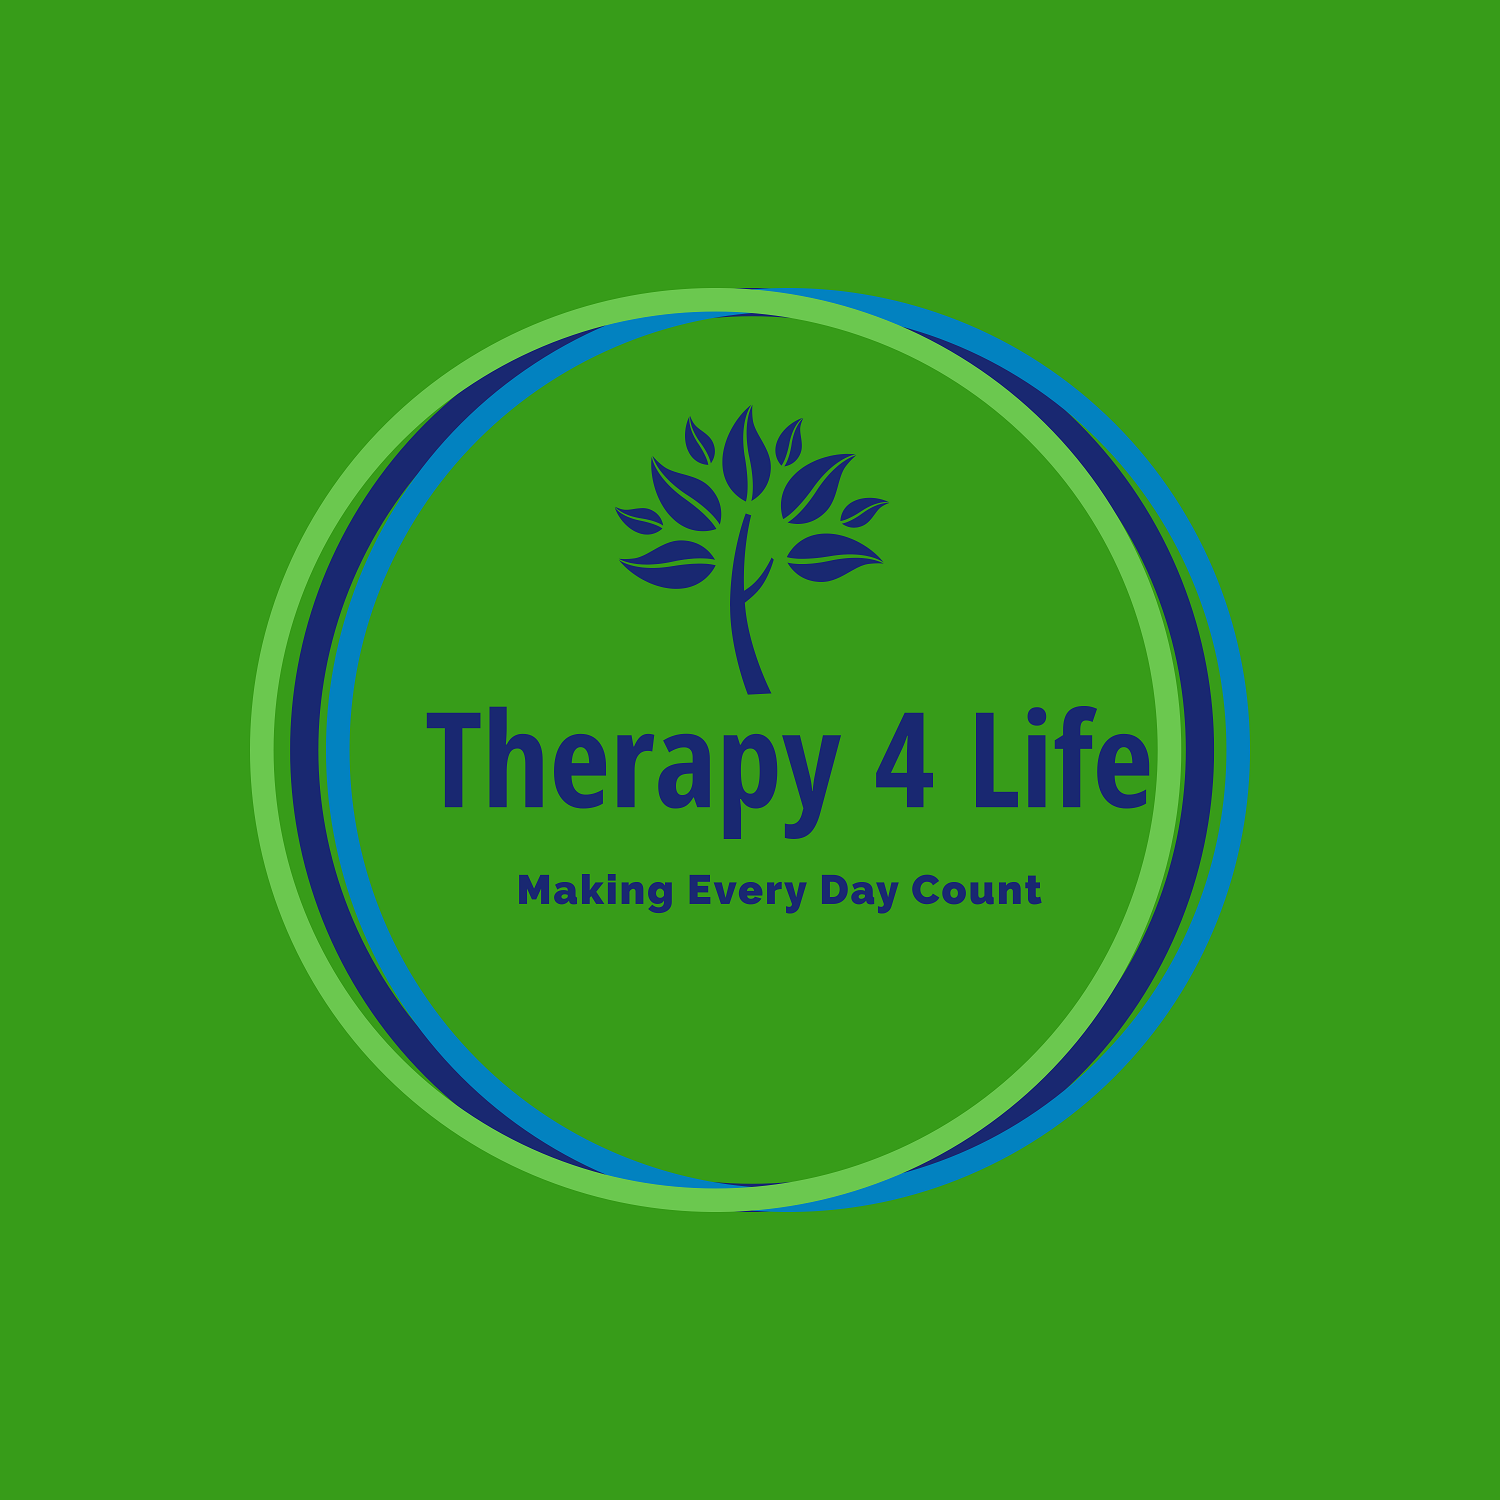 Therapy 4 Life